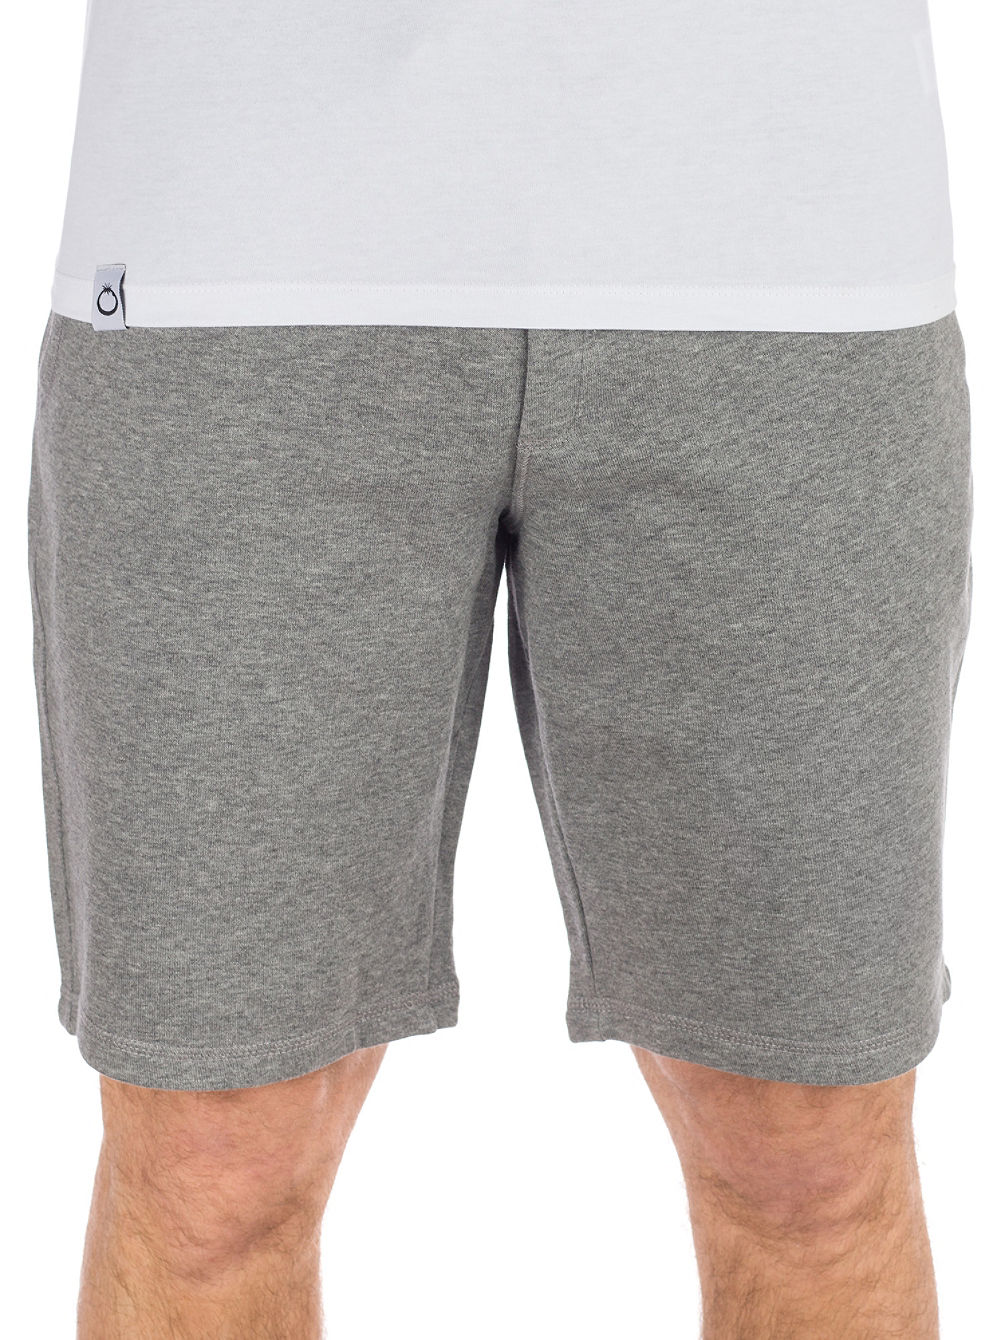 Munch/Kokomo Shorts